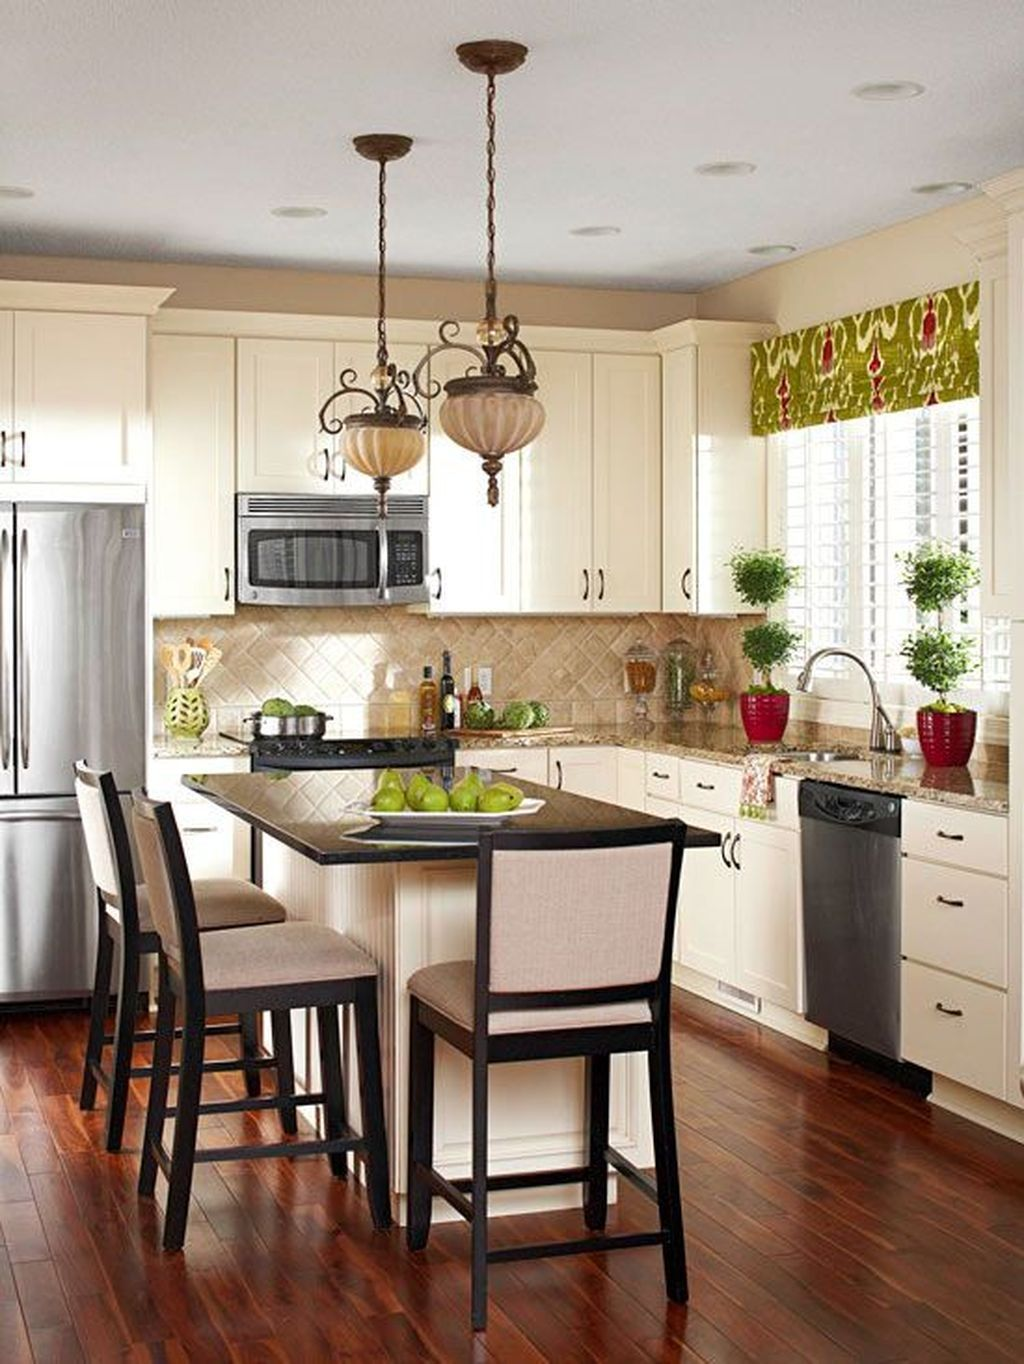 30 Trending Kitchen Island Ideas With Seating  Kitchens Alluring Kitchen Island Design With Seating Design Ideas